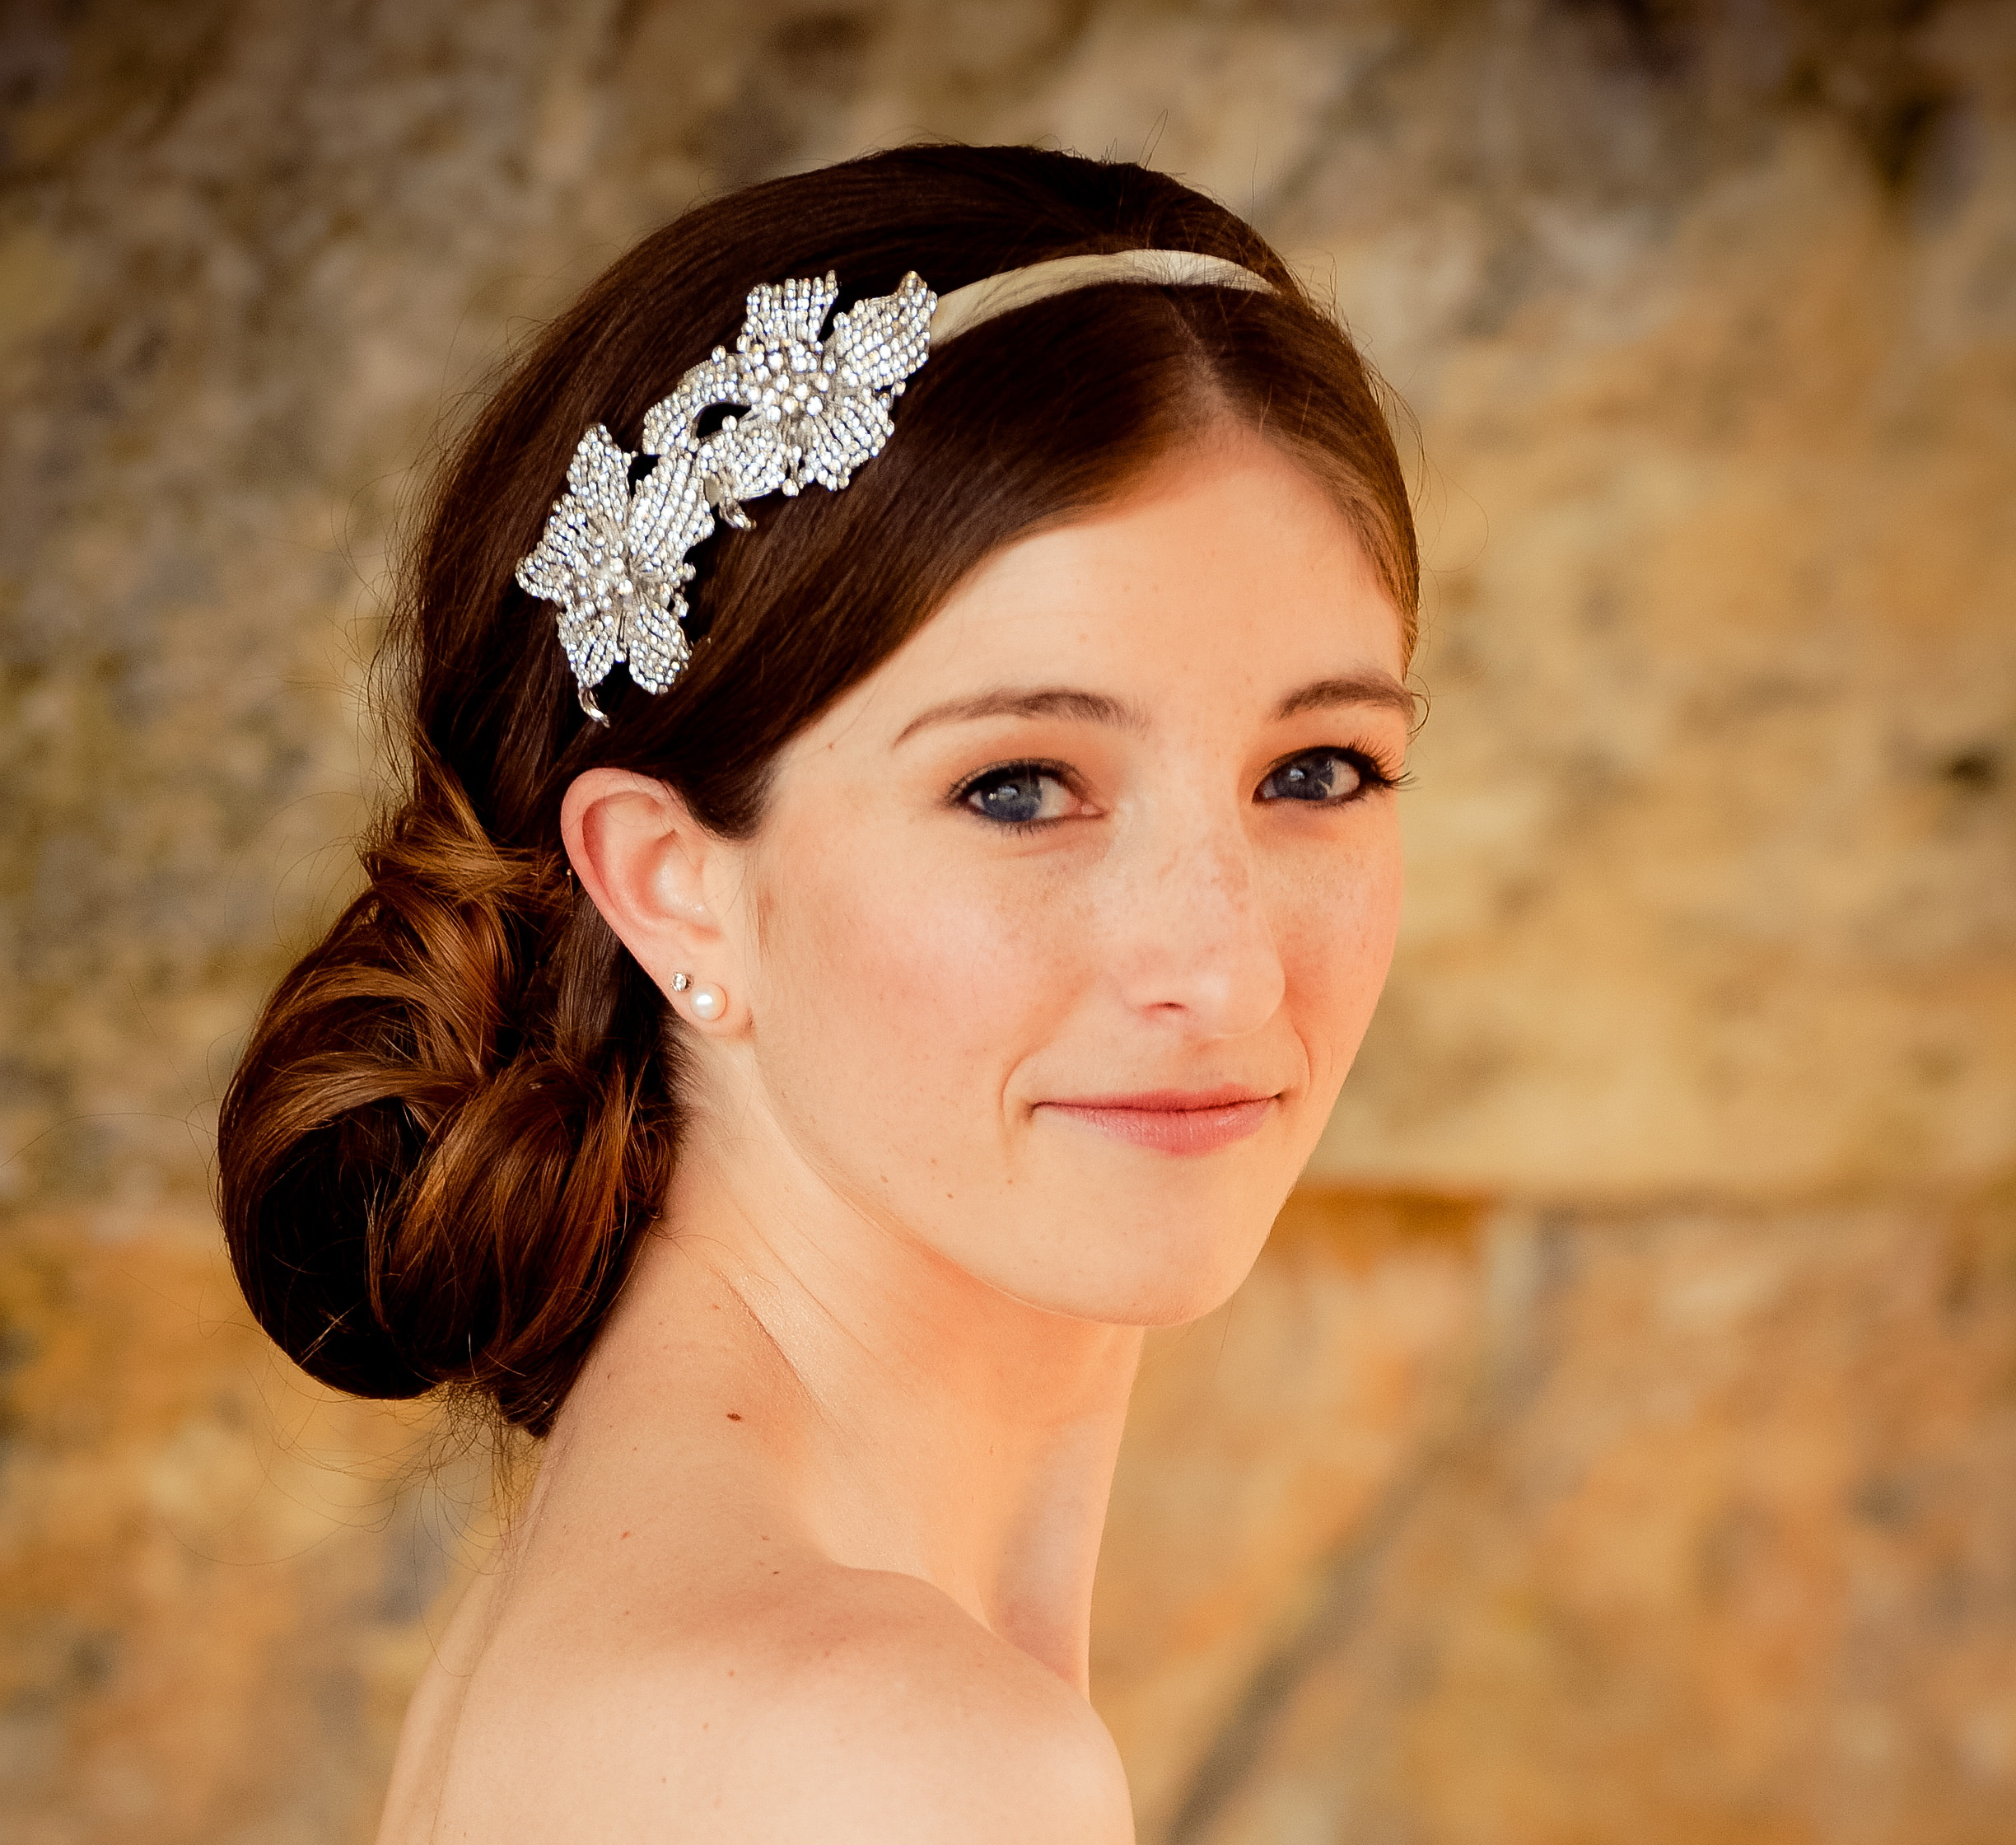 10 Gorgeous Bridal Veils Wedding Hair Accessories Embellished Headband | OneWed.com